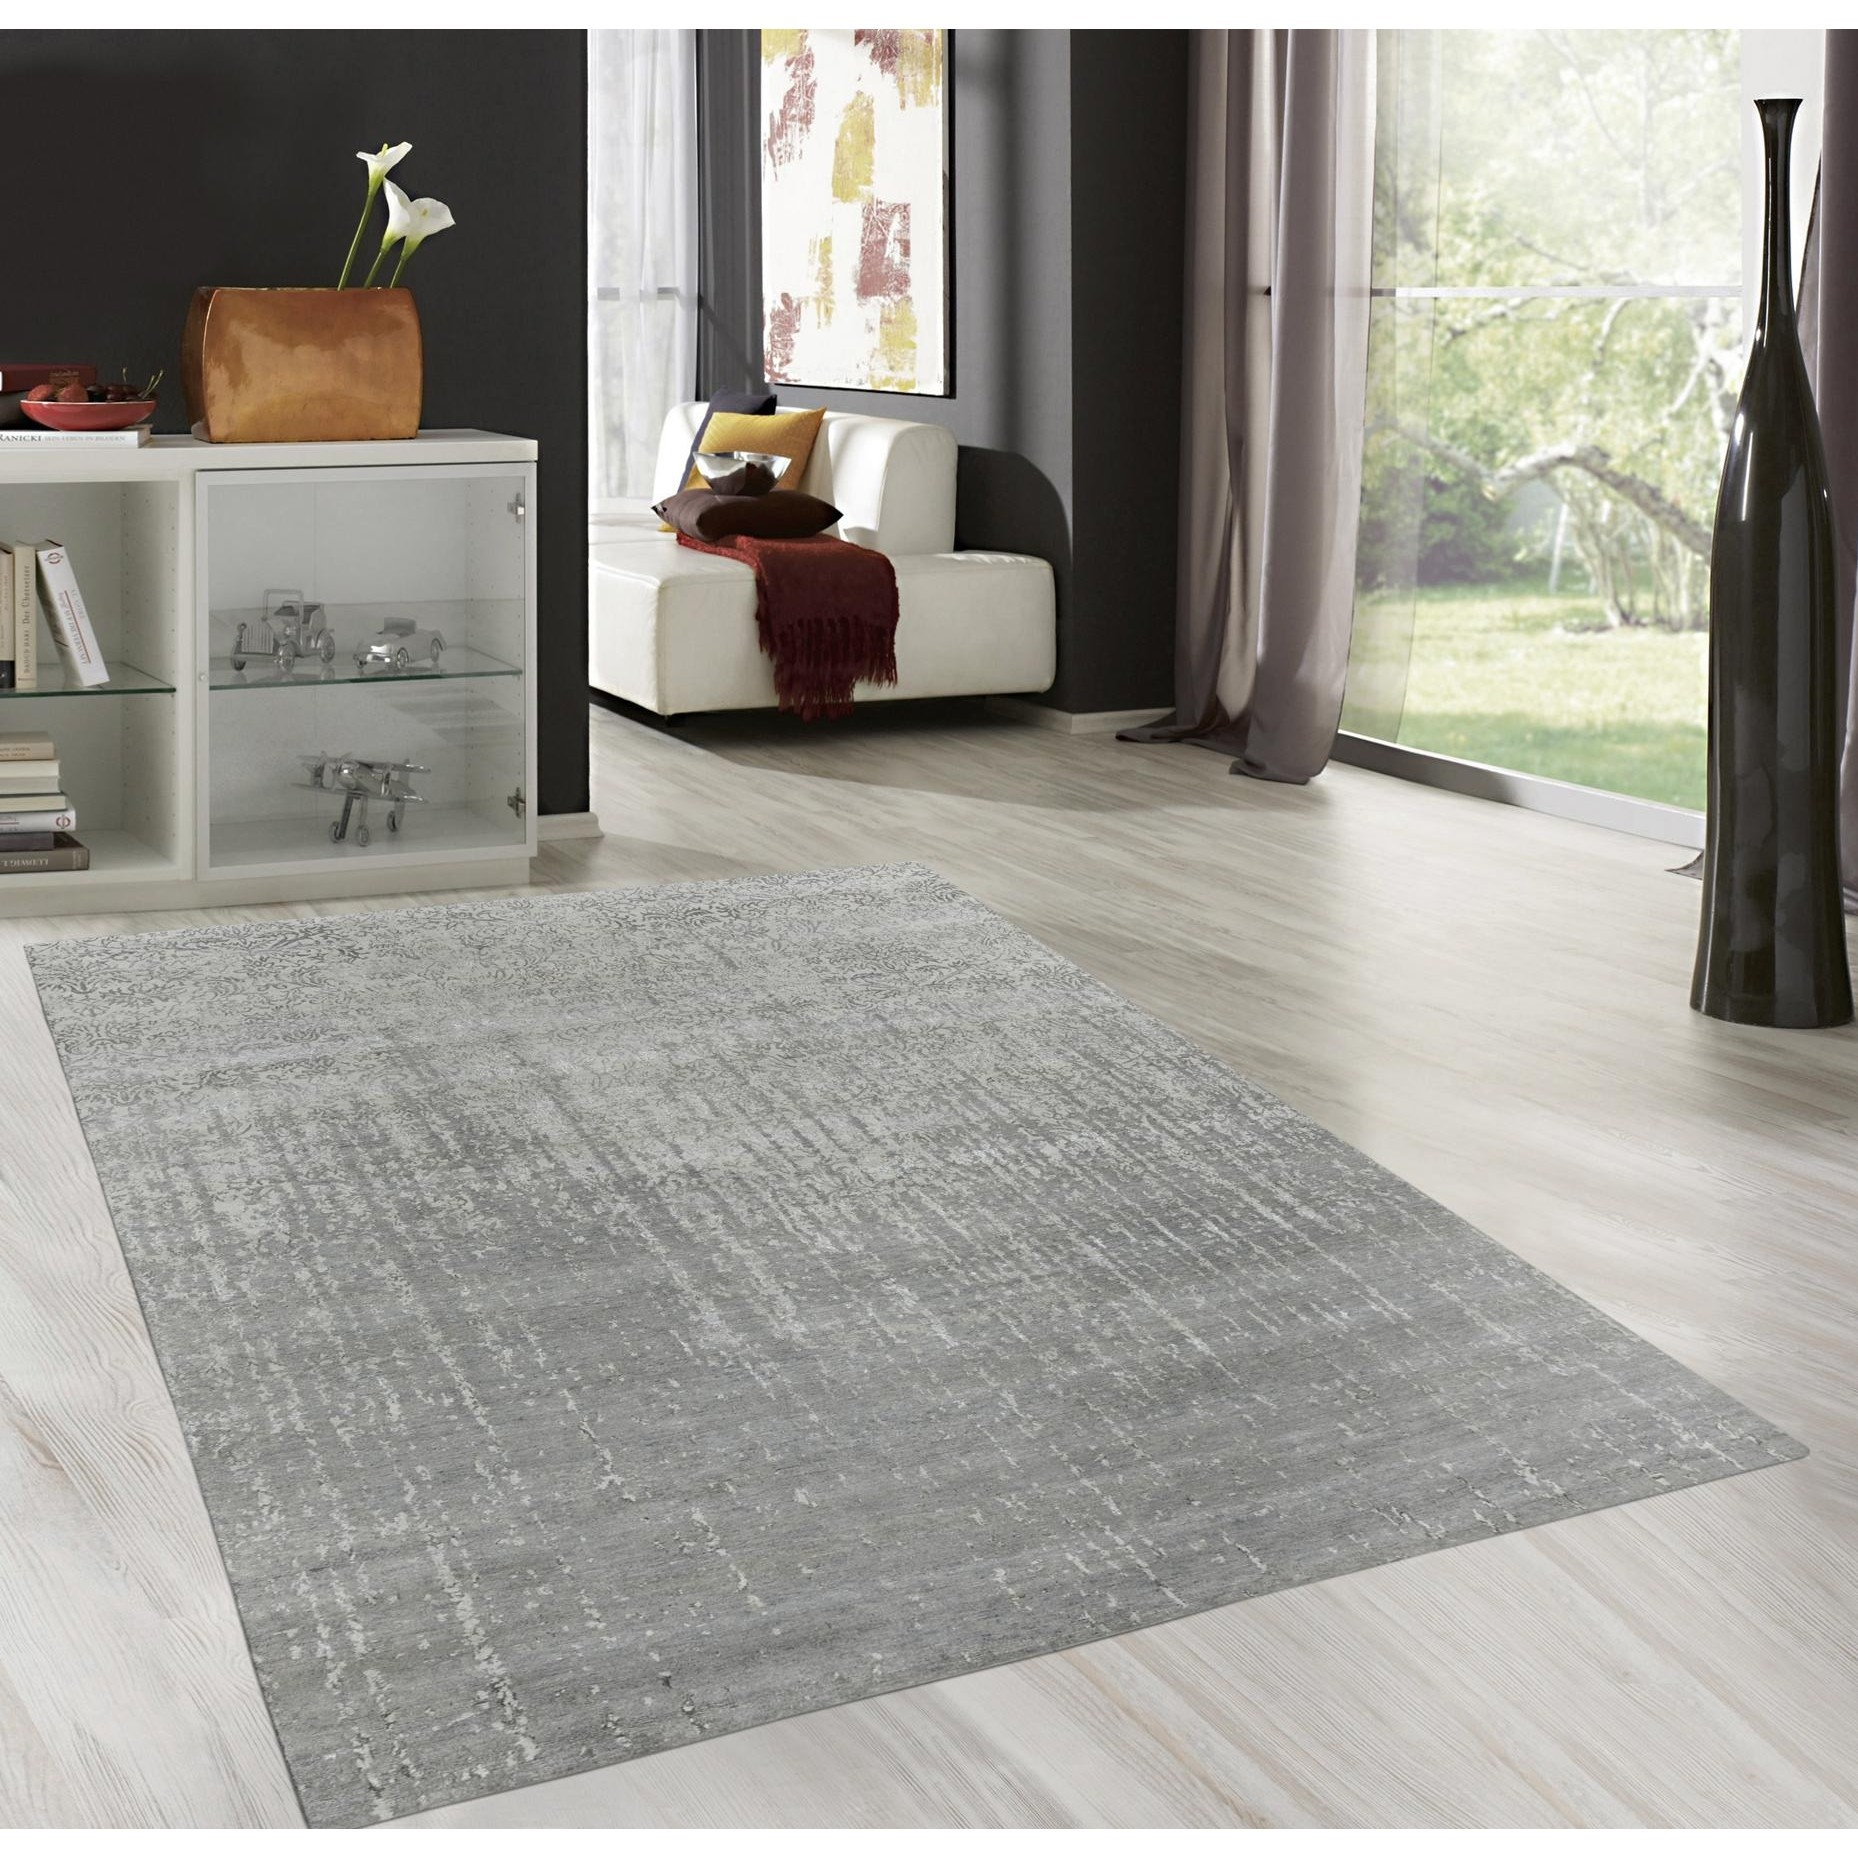 Rugs Appealing Pattern 8×10 Area Rug For Nice Floor Decor Ideas Pertaining To Cheap Silver Rugs (Image 11 of 15)